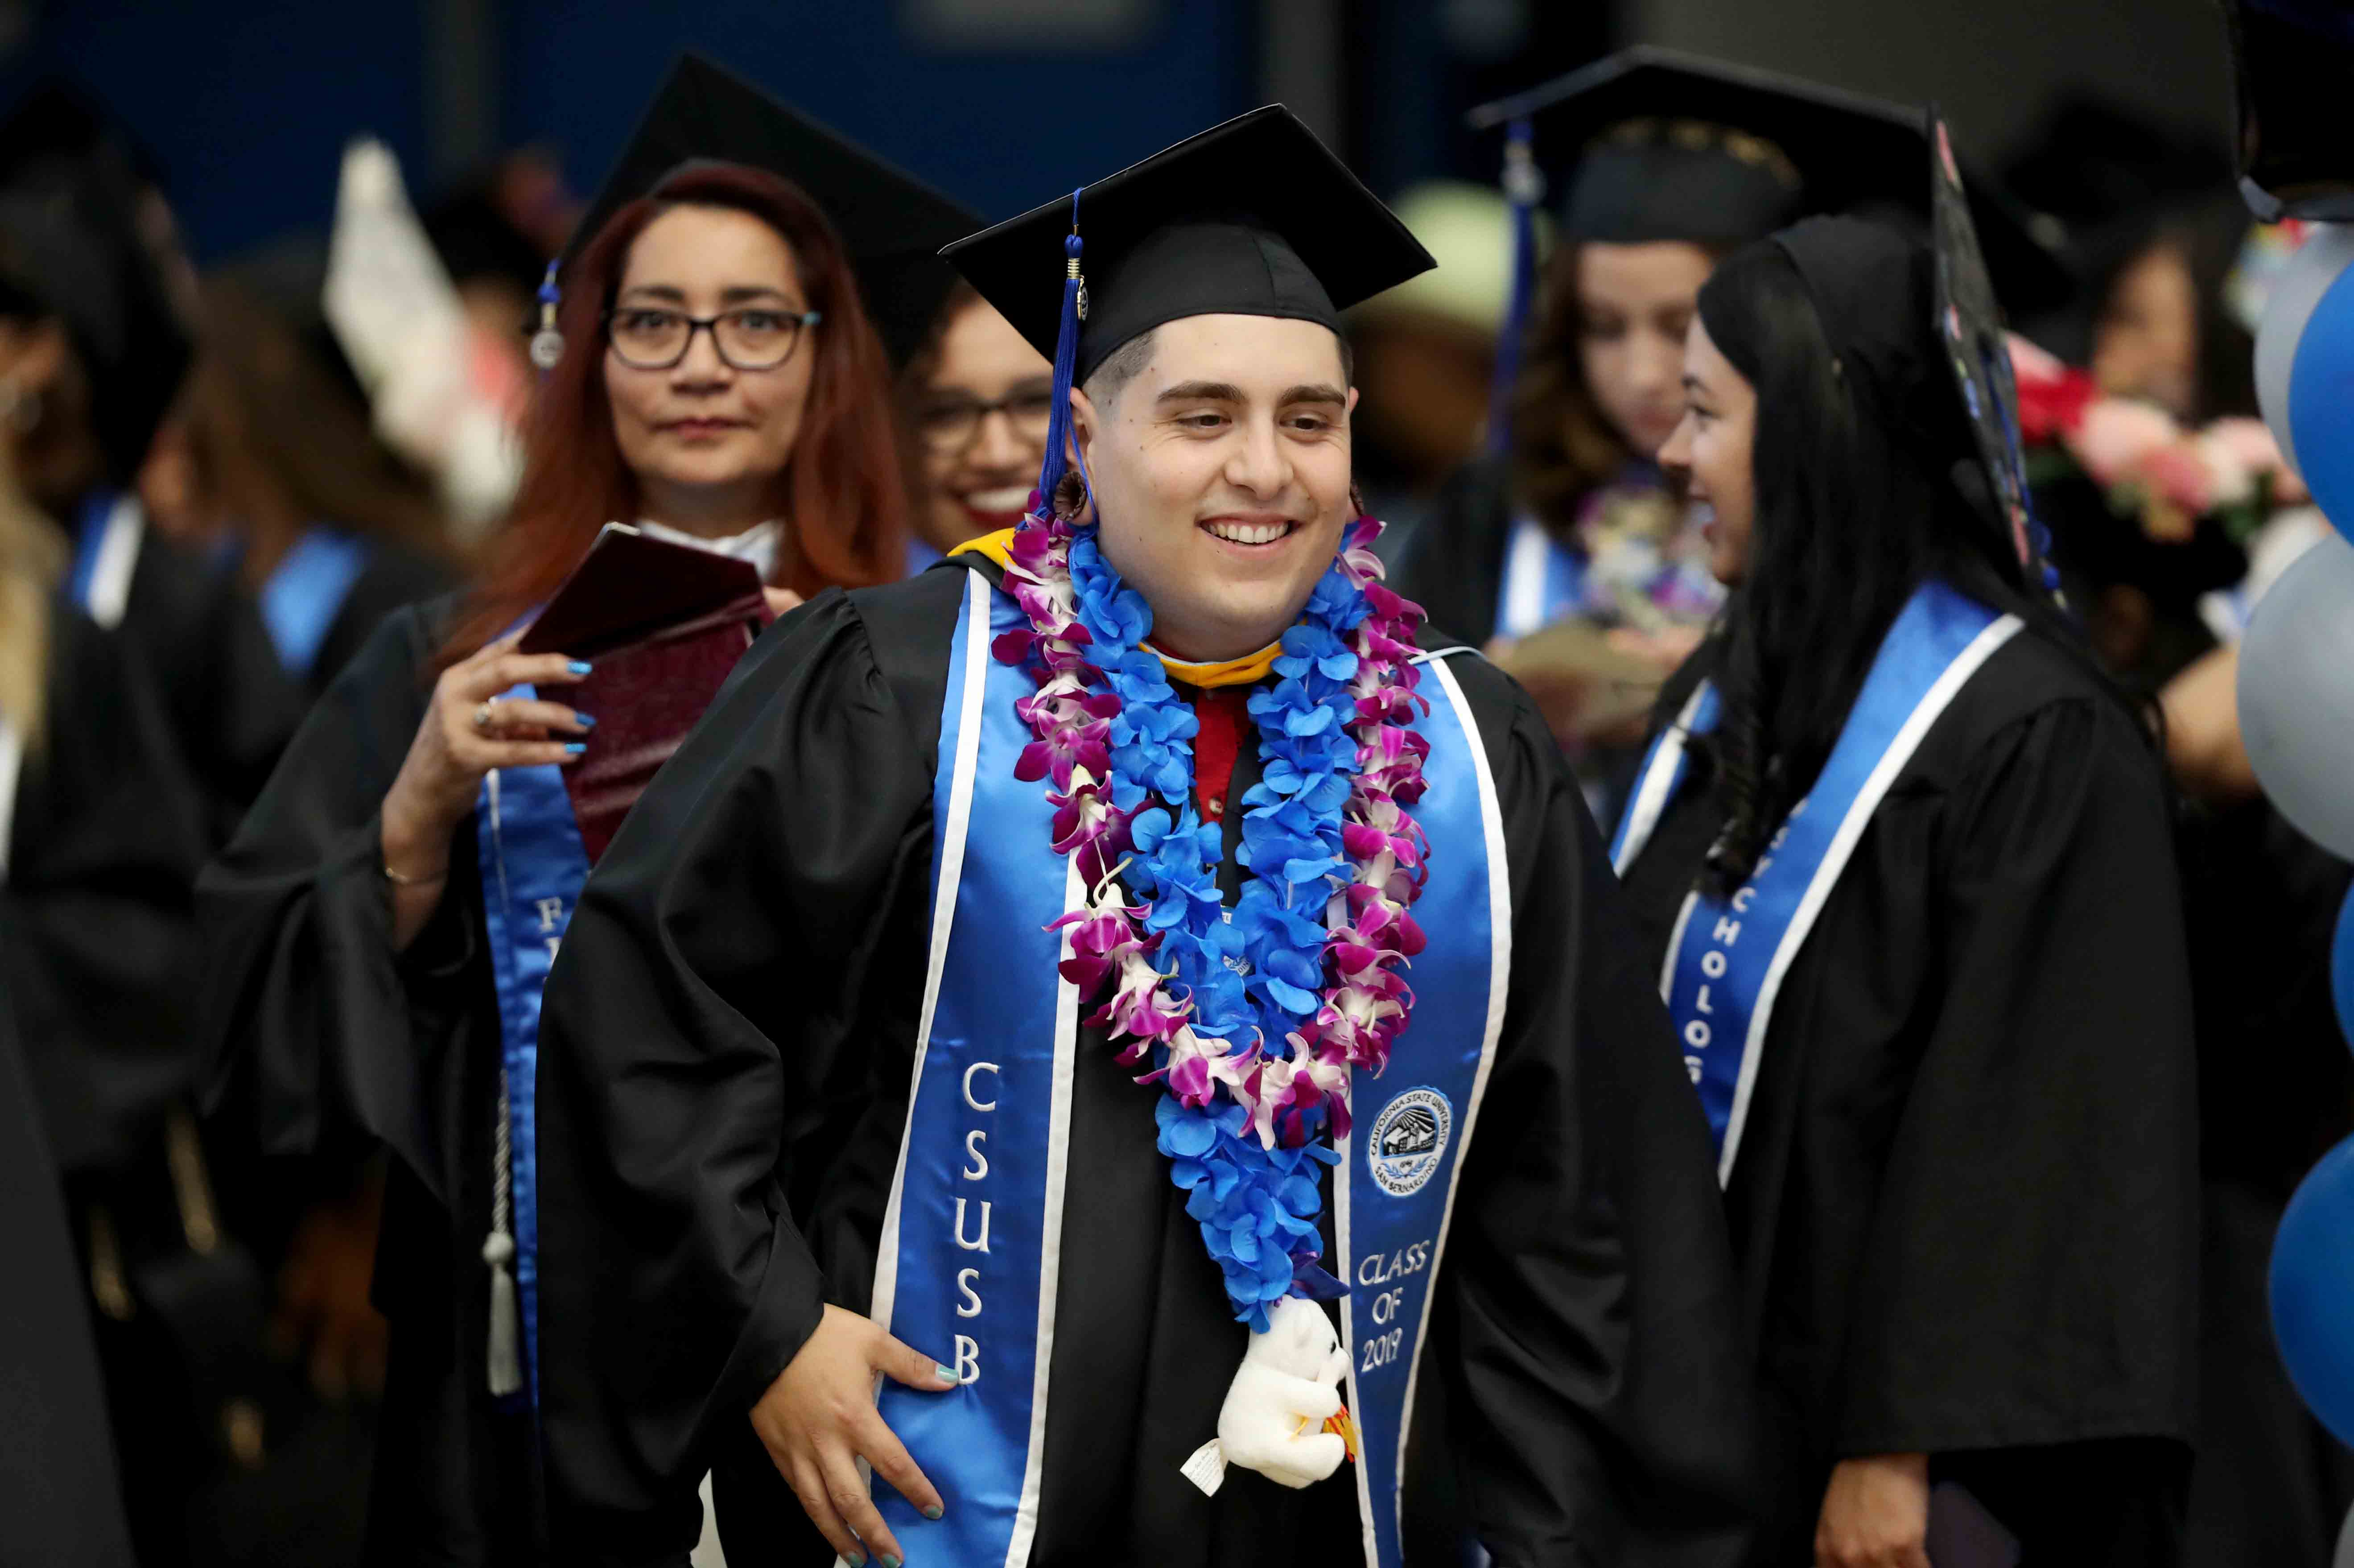 Nearly 400 graduating Latino students were recognized for their accomplishments during the 20th annual Latino Recognition Ceremony